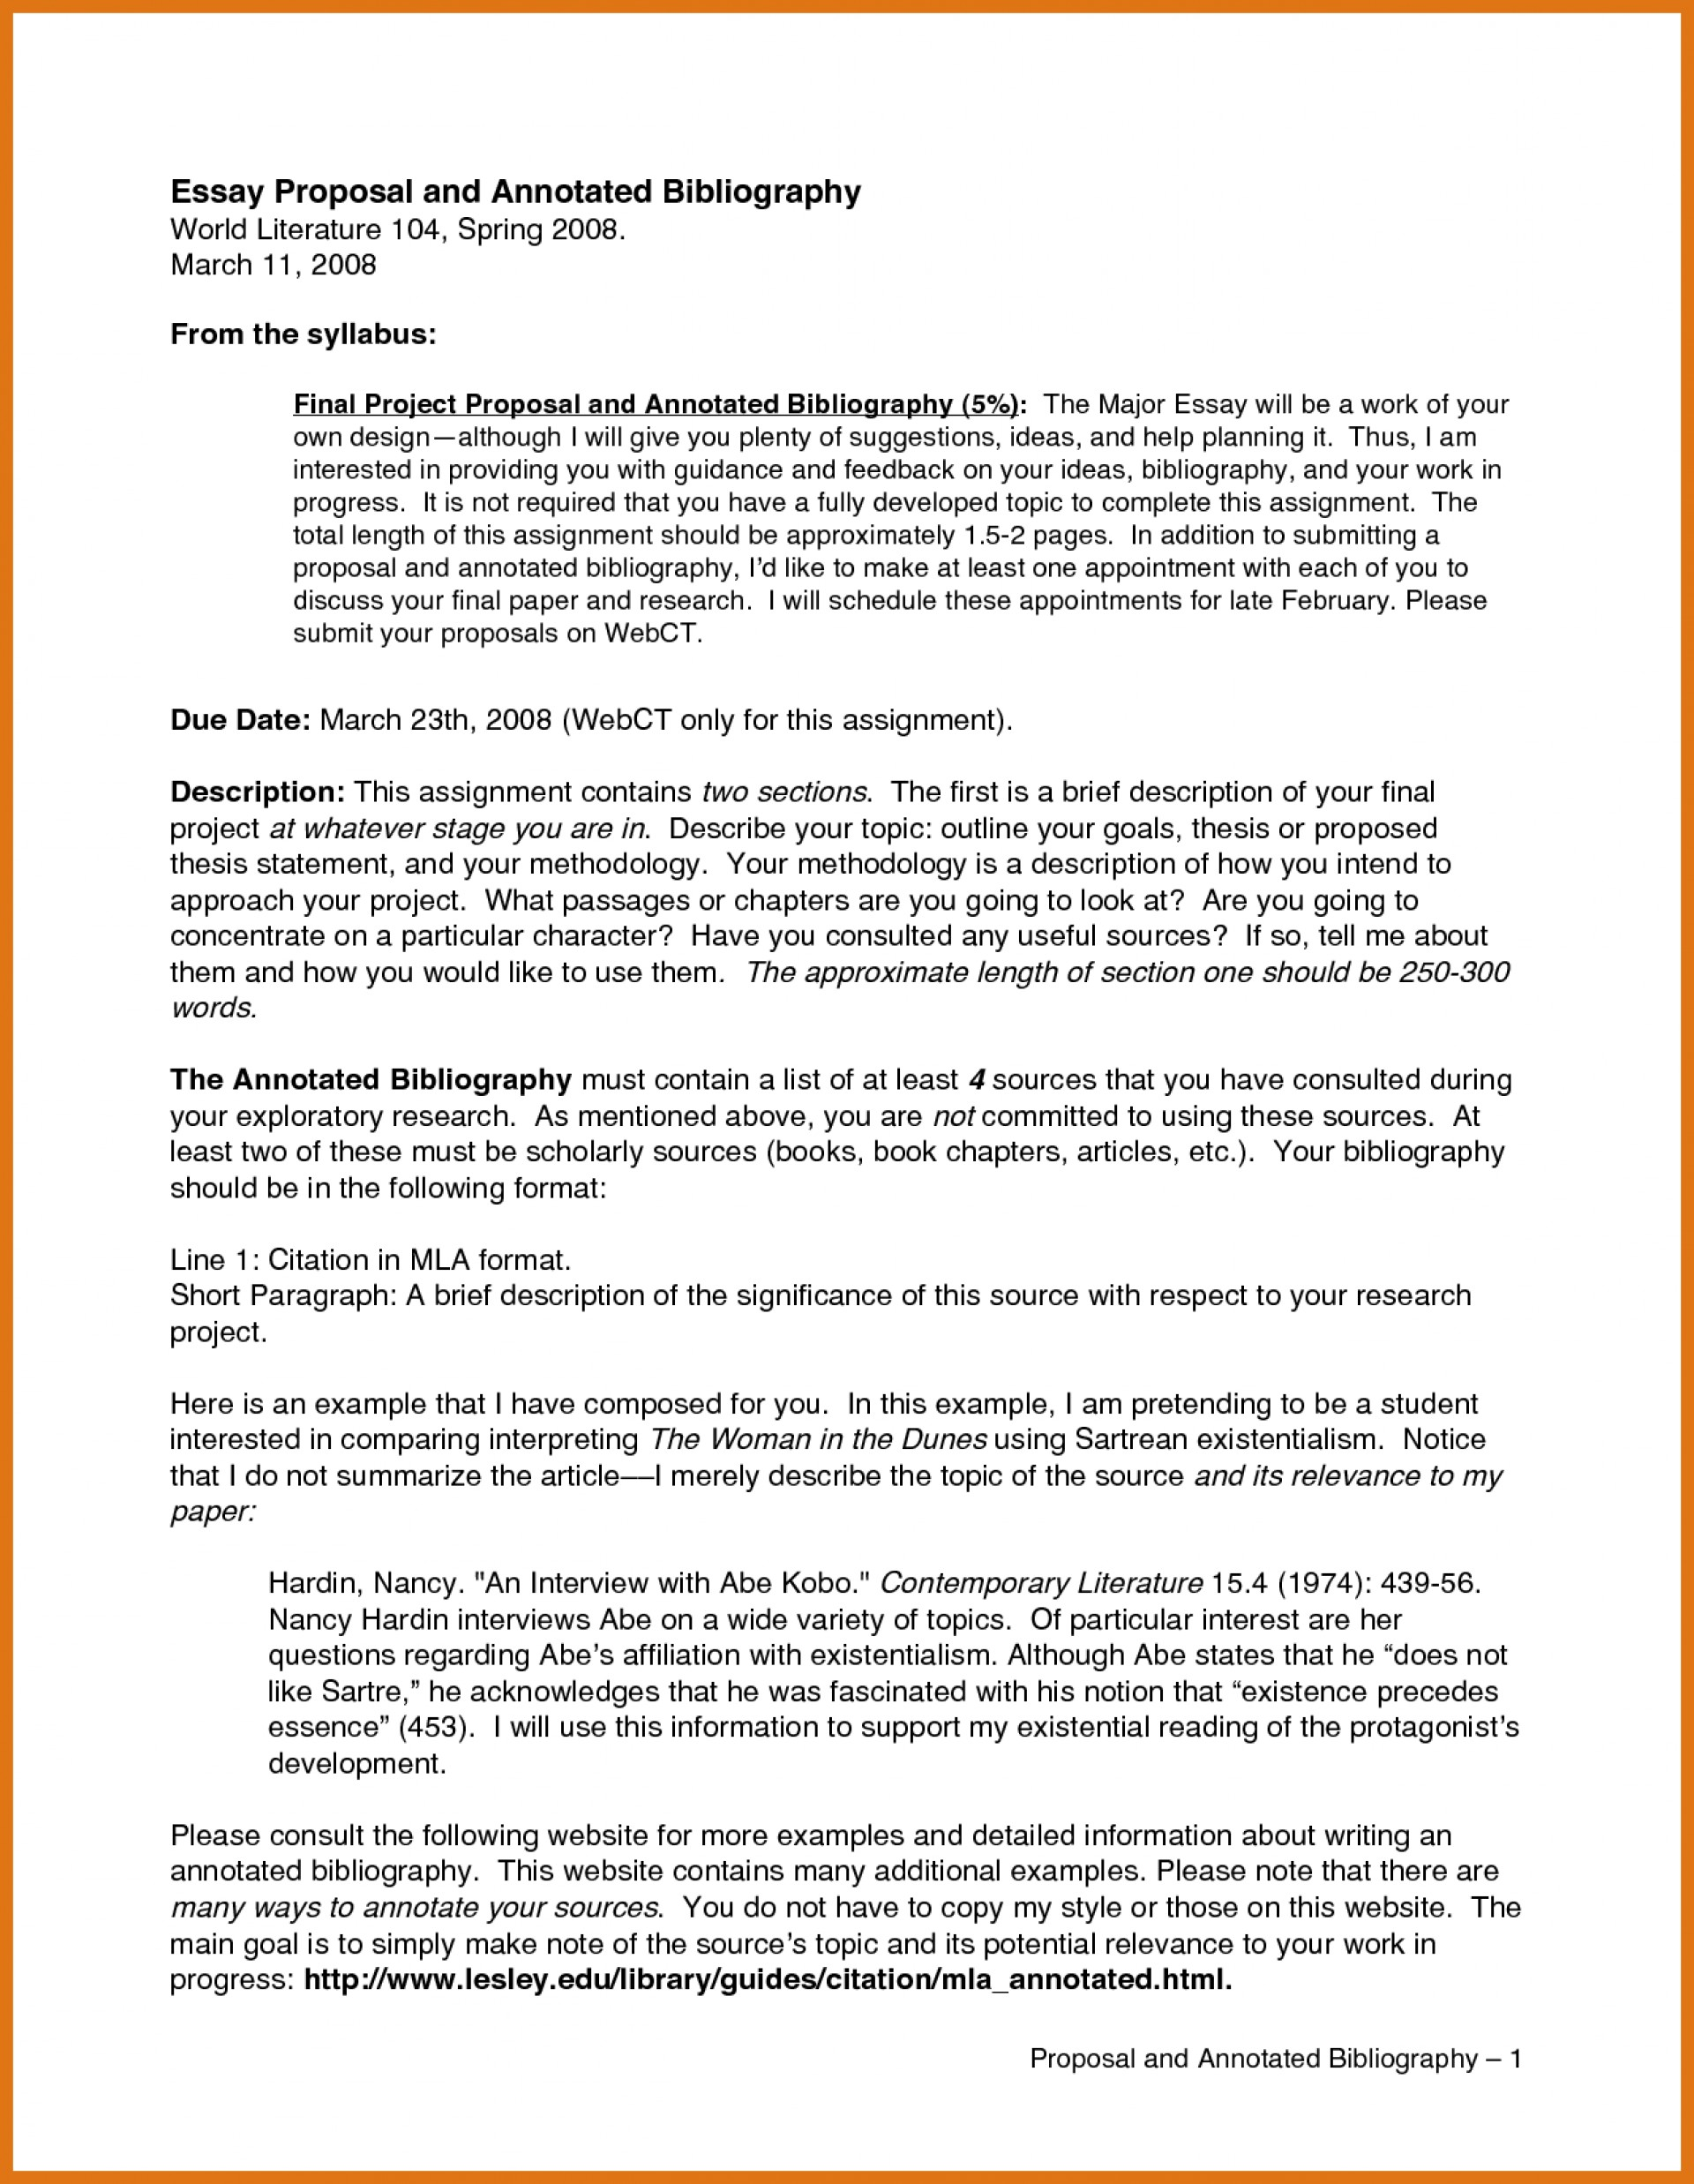 025 Essay Example How To Cite Articles In Bunch Ideas Of Chicago Style Essays Citation Sources Mlaormat Excellent Bibliography Sampleor Research Paper Singular Article Title Text Apa A Quote From An Internet News 1920